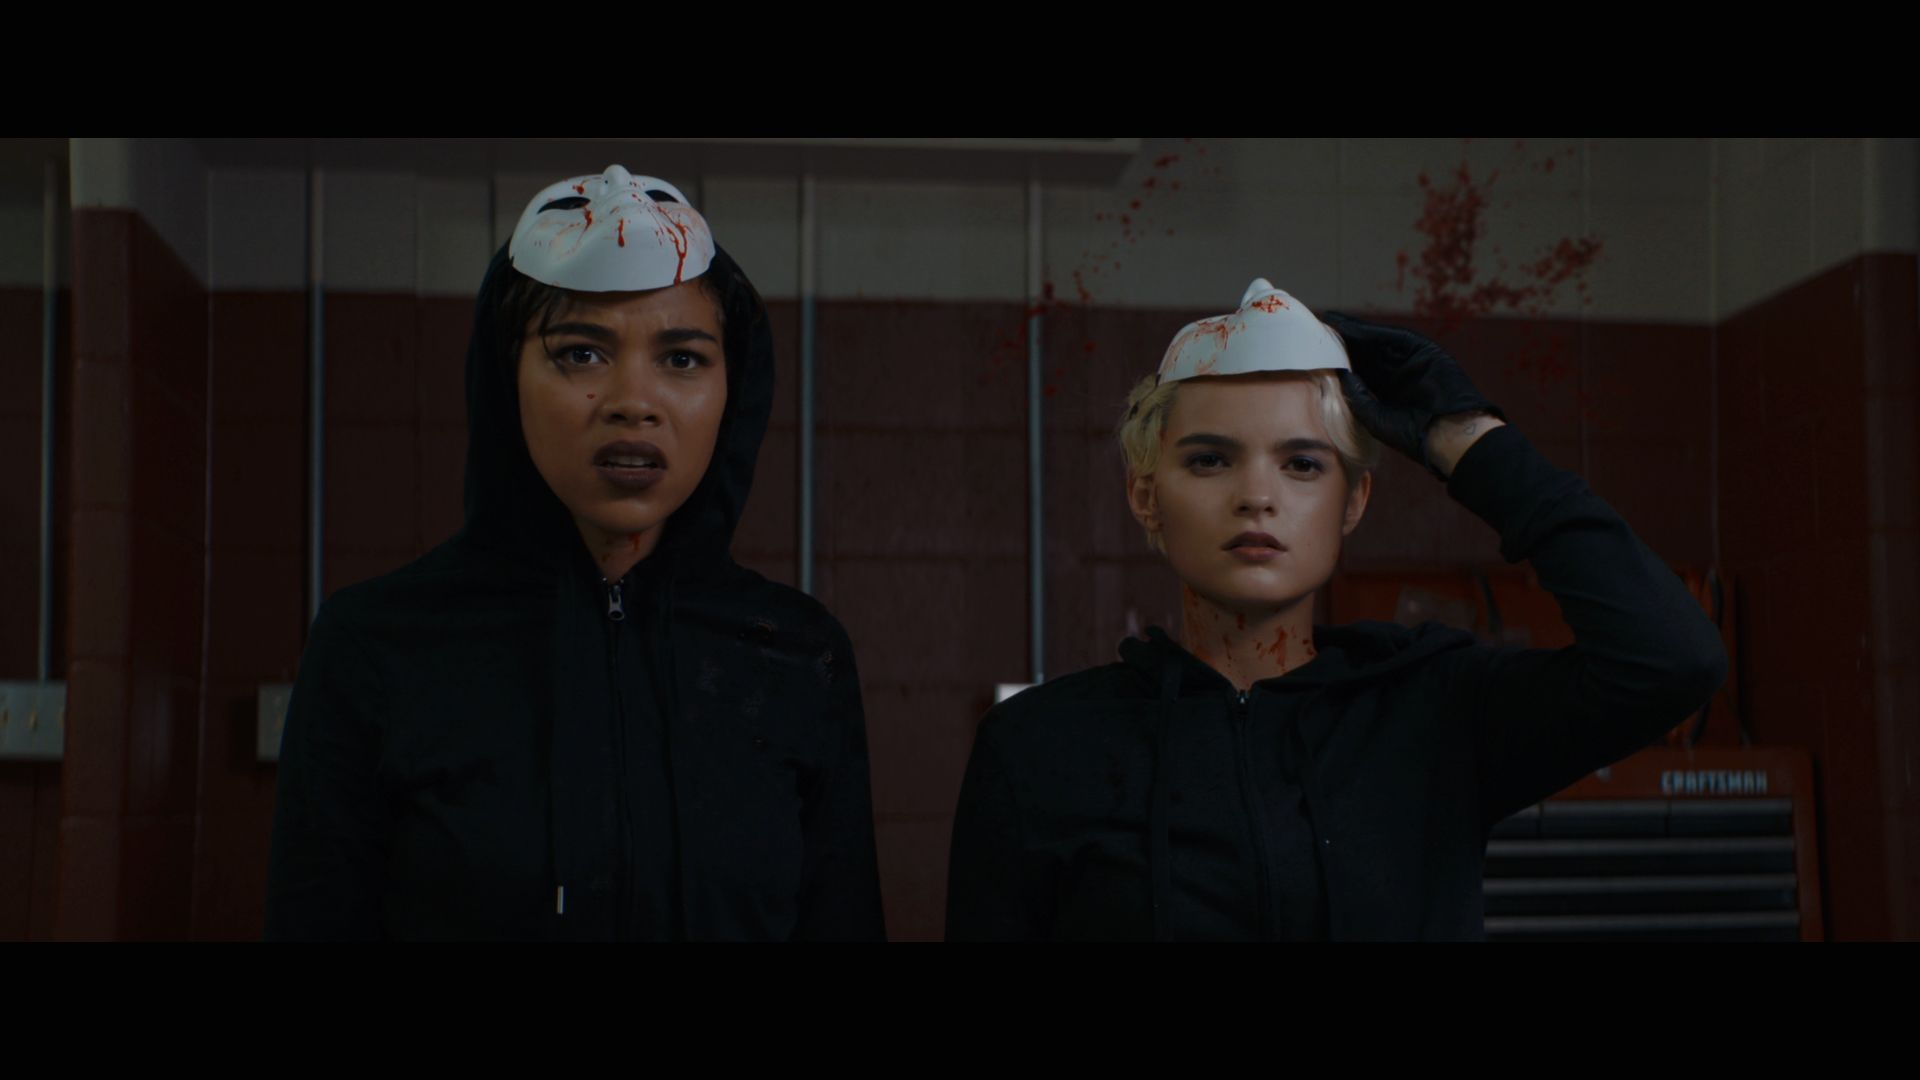 Social media obsession turns deadly in Tragedy Girls trailer